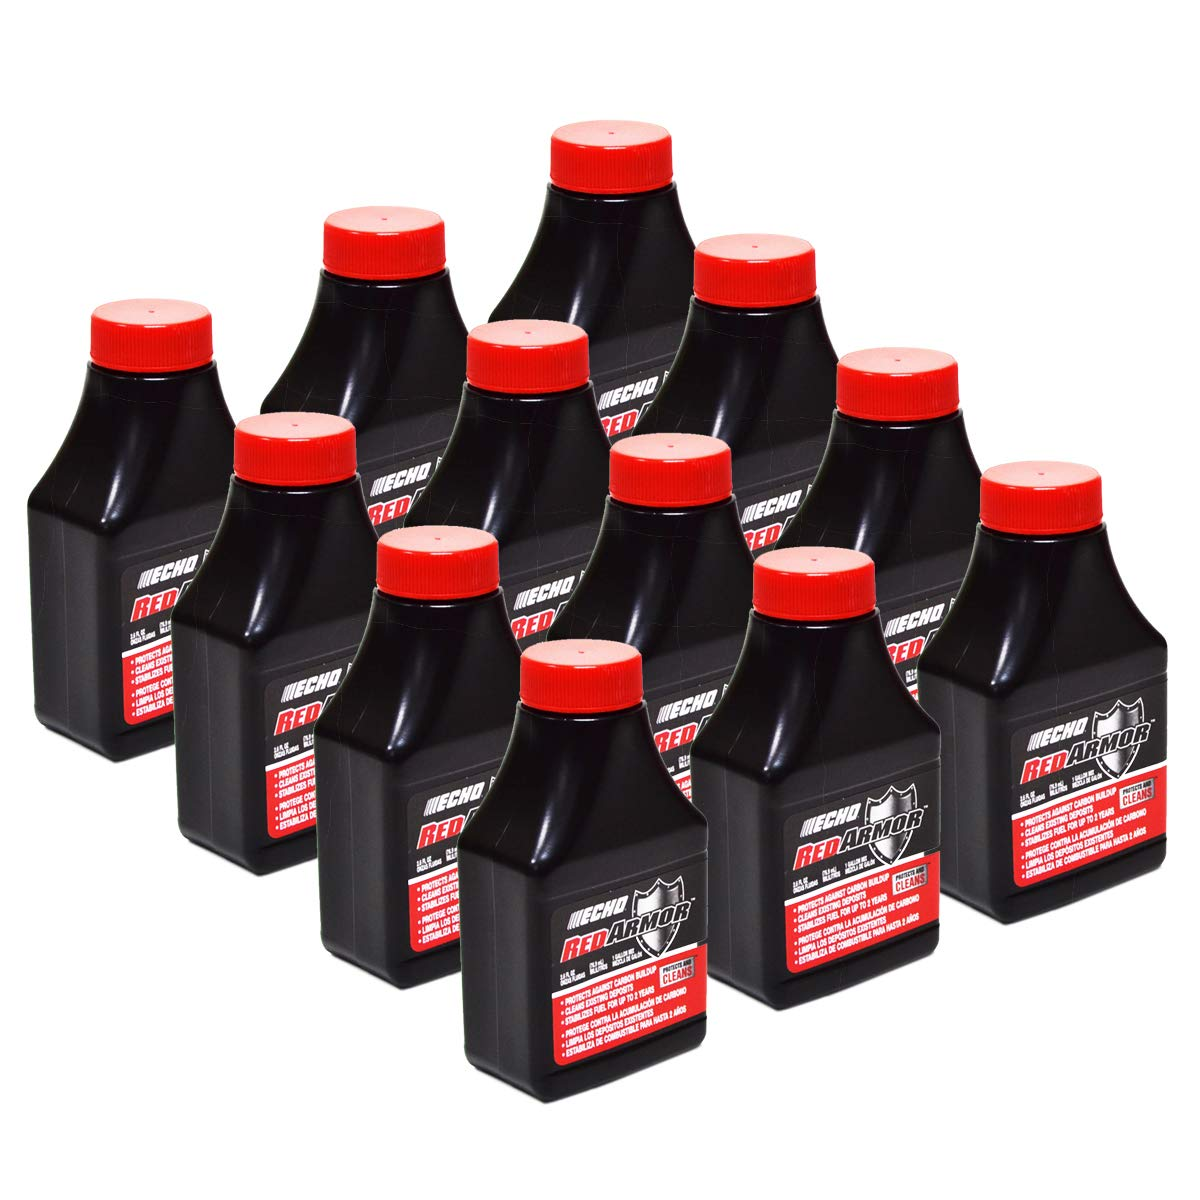 (12) Genuine OEM Echo Red Armor 1 Gallon Mix of 2-Cycle Oil 2.6oz 2.6 oz 6550000 by Replaces Echo